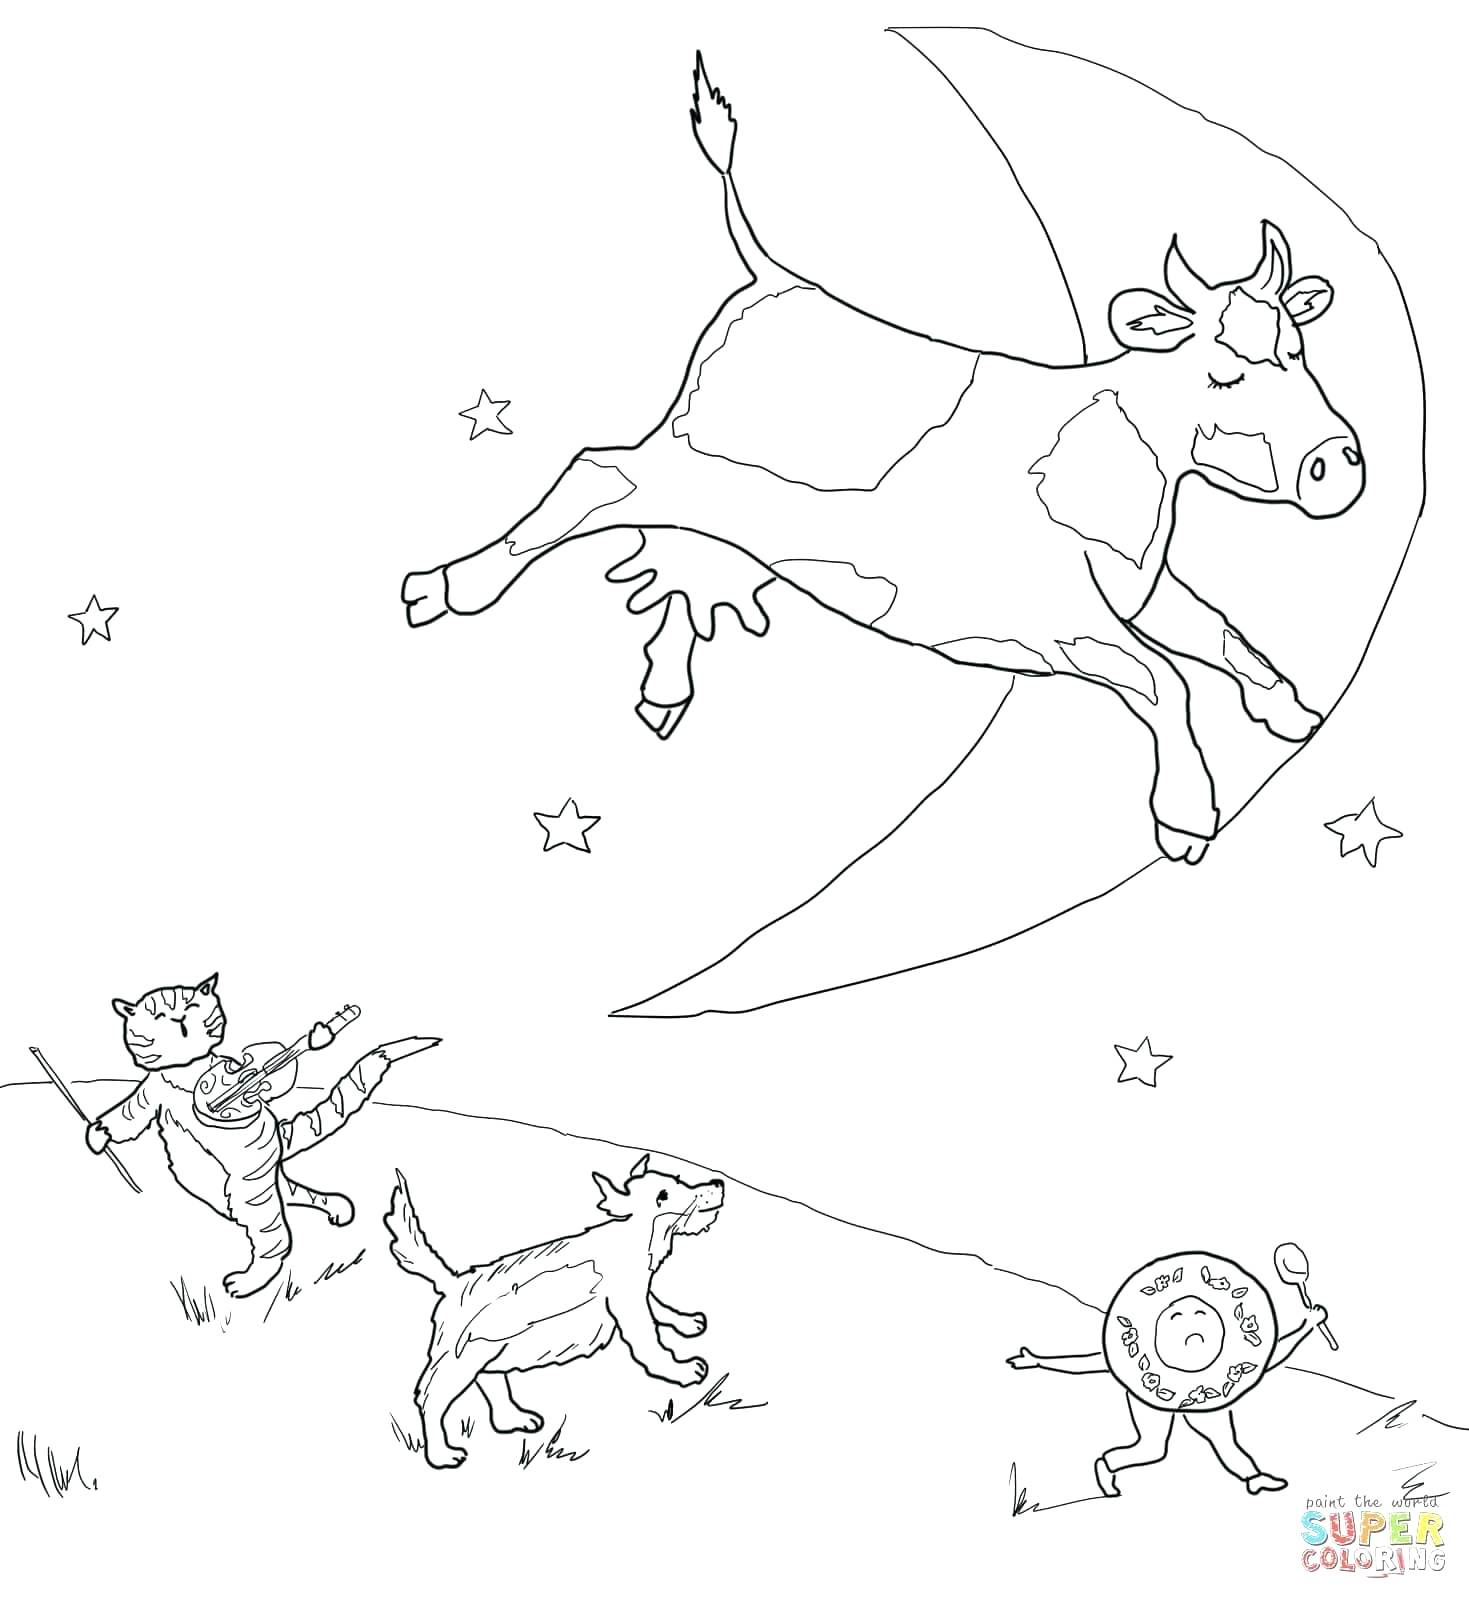 Nursery Rhyme Coloring Pages Hey Diddle Nursery Rhyme Coloring Pages - Free Printable Nursery Rhyme Coloring Pages